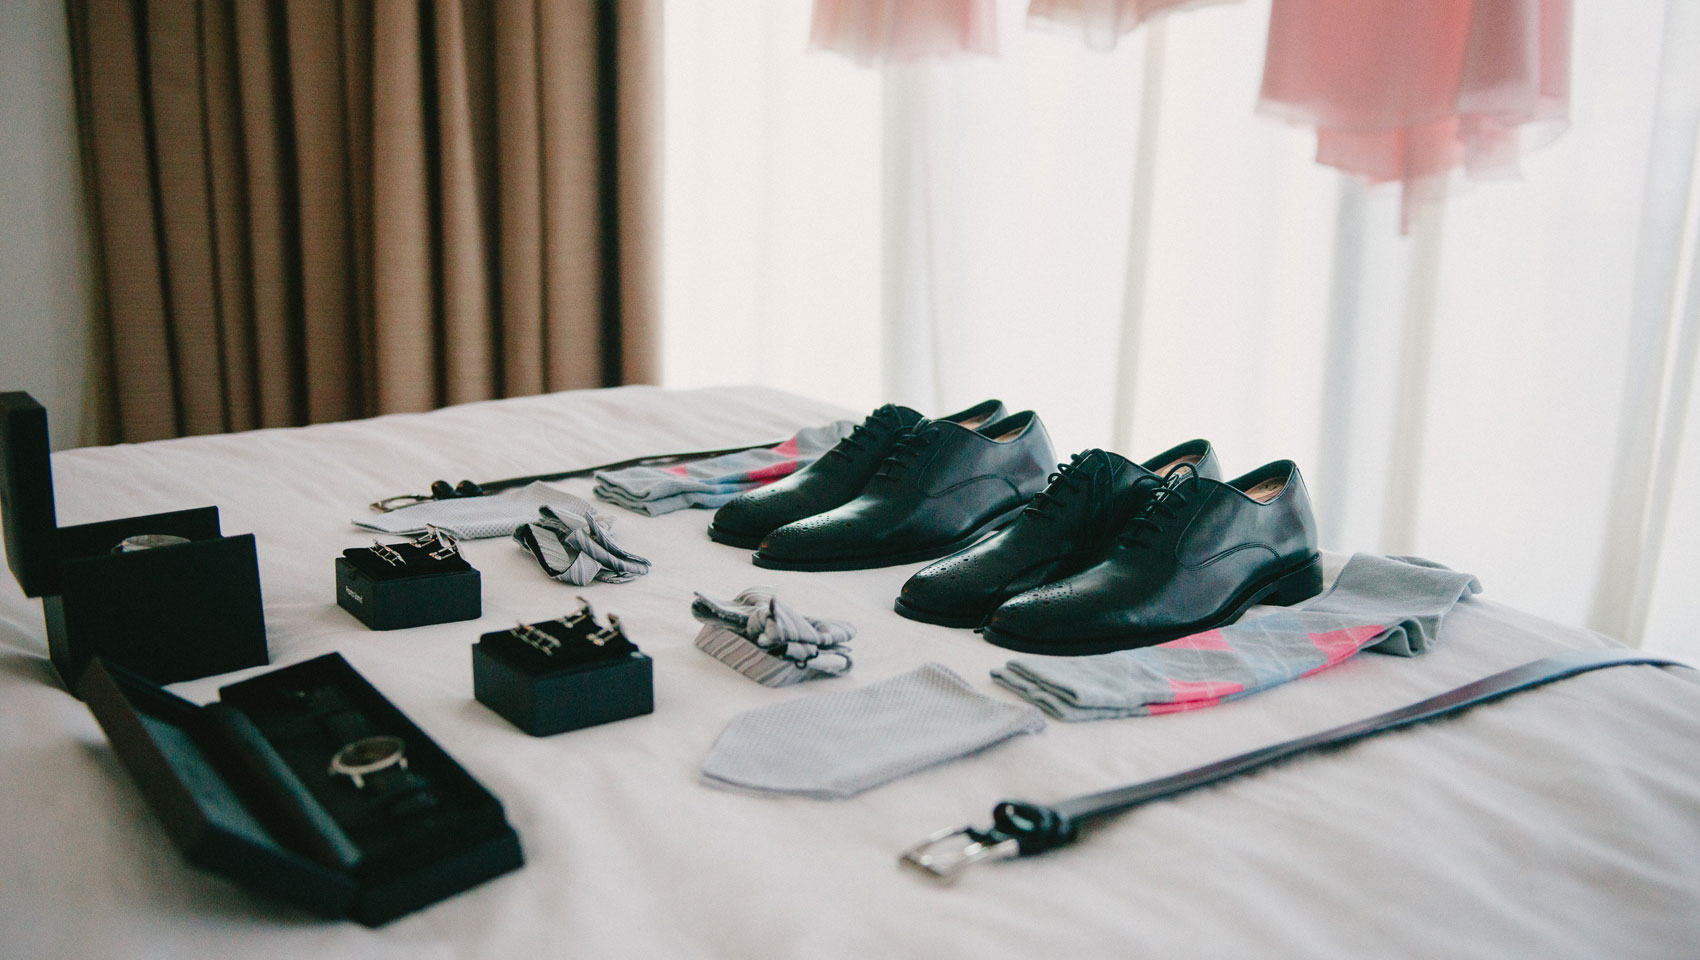 Wedding shoes, watch, tie, and belt on bed.